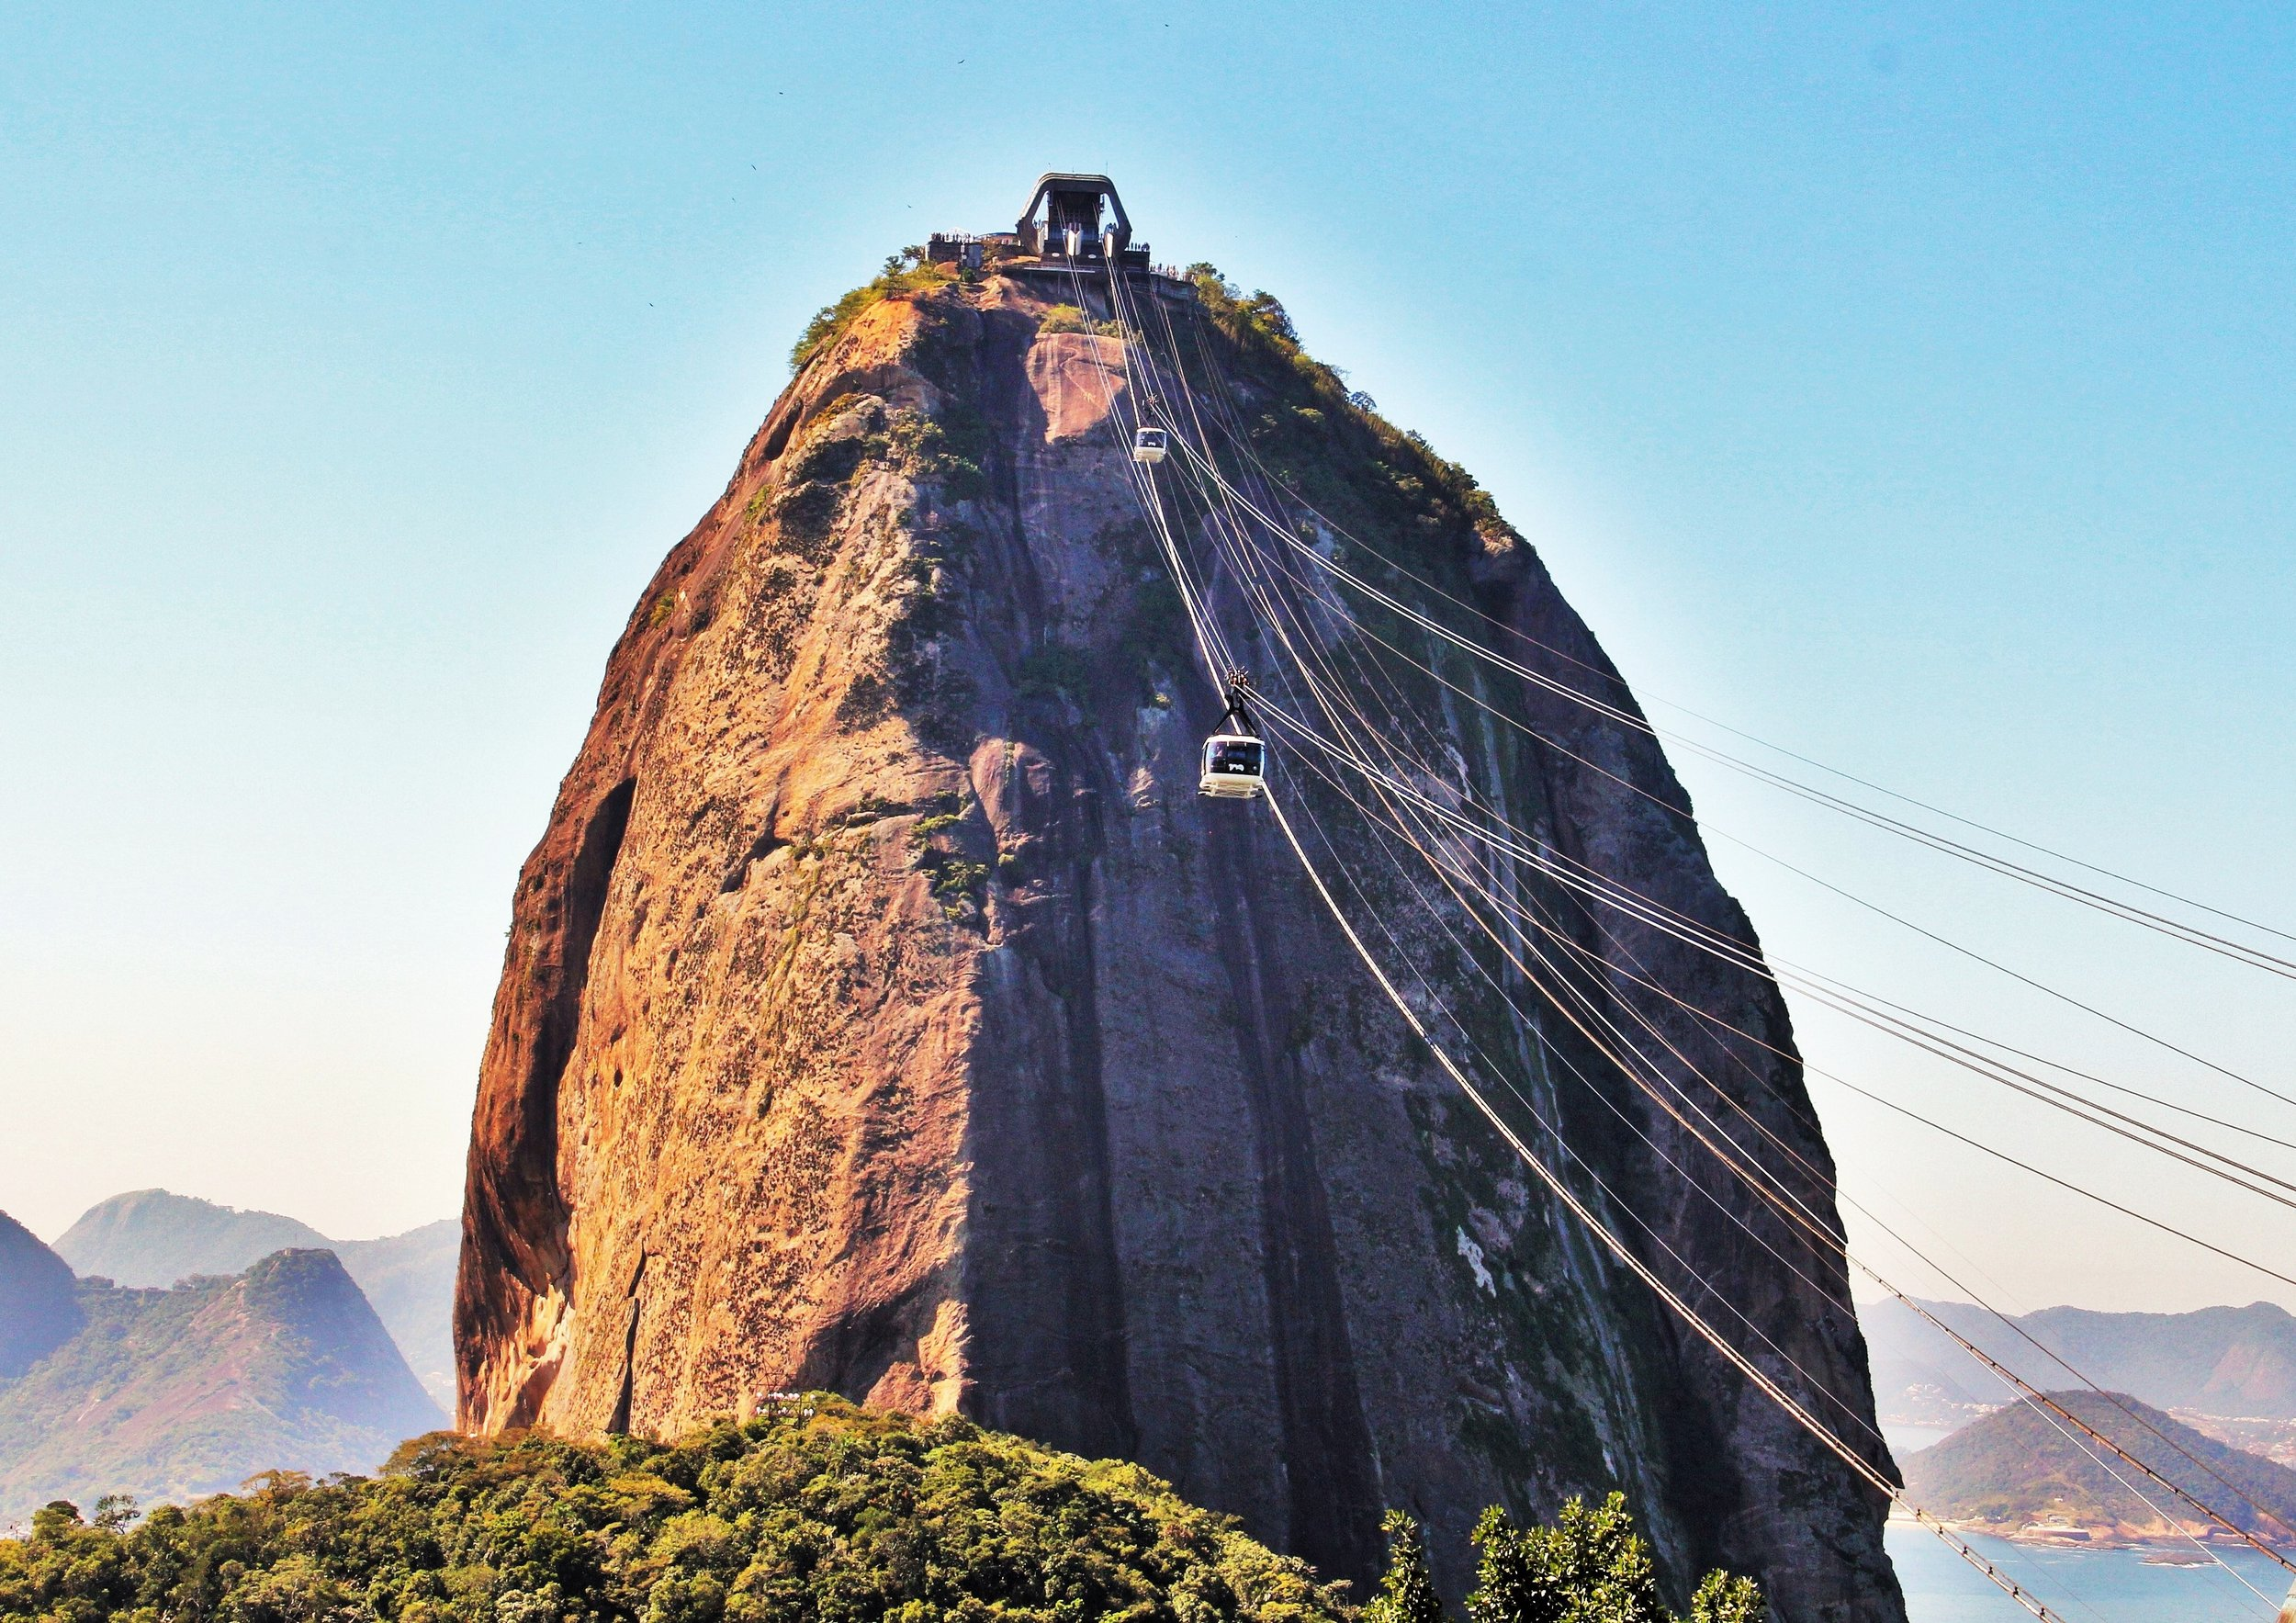 The grand Sugarloaf Mountain in Brazil.